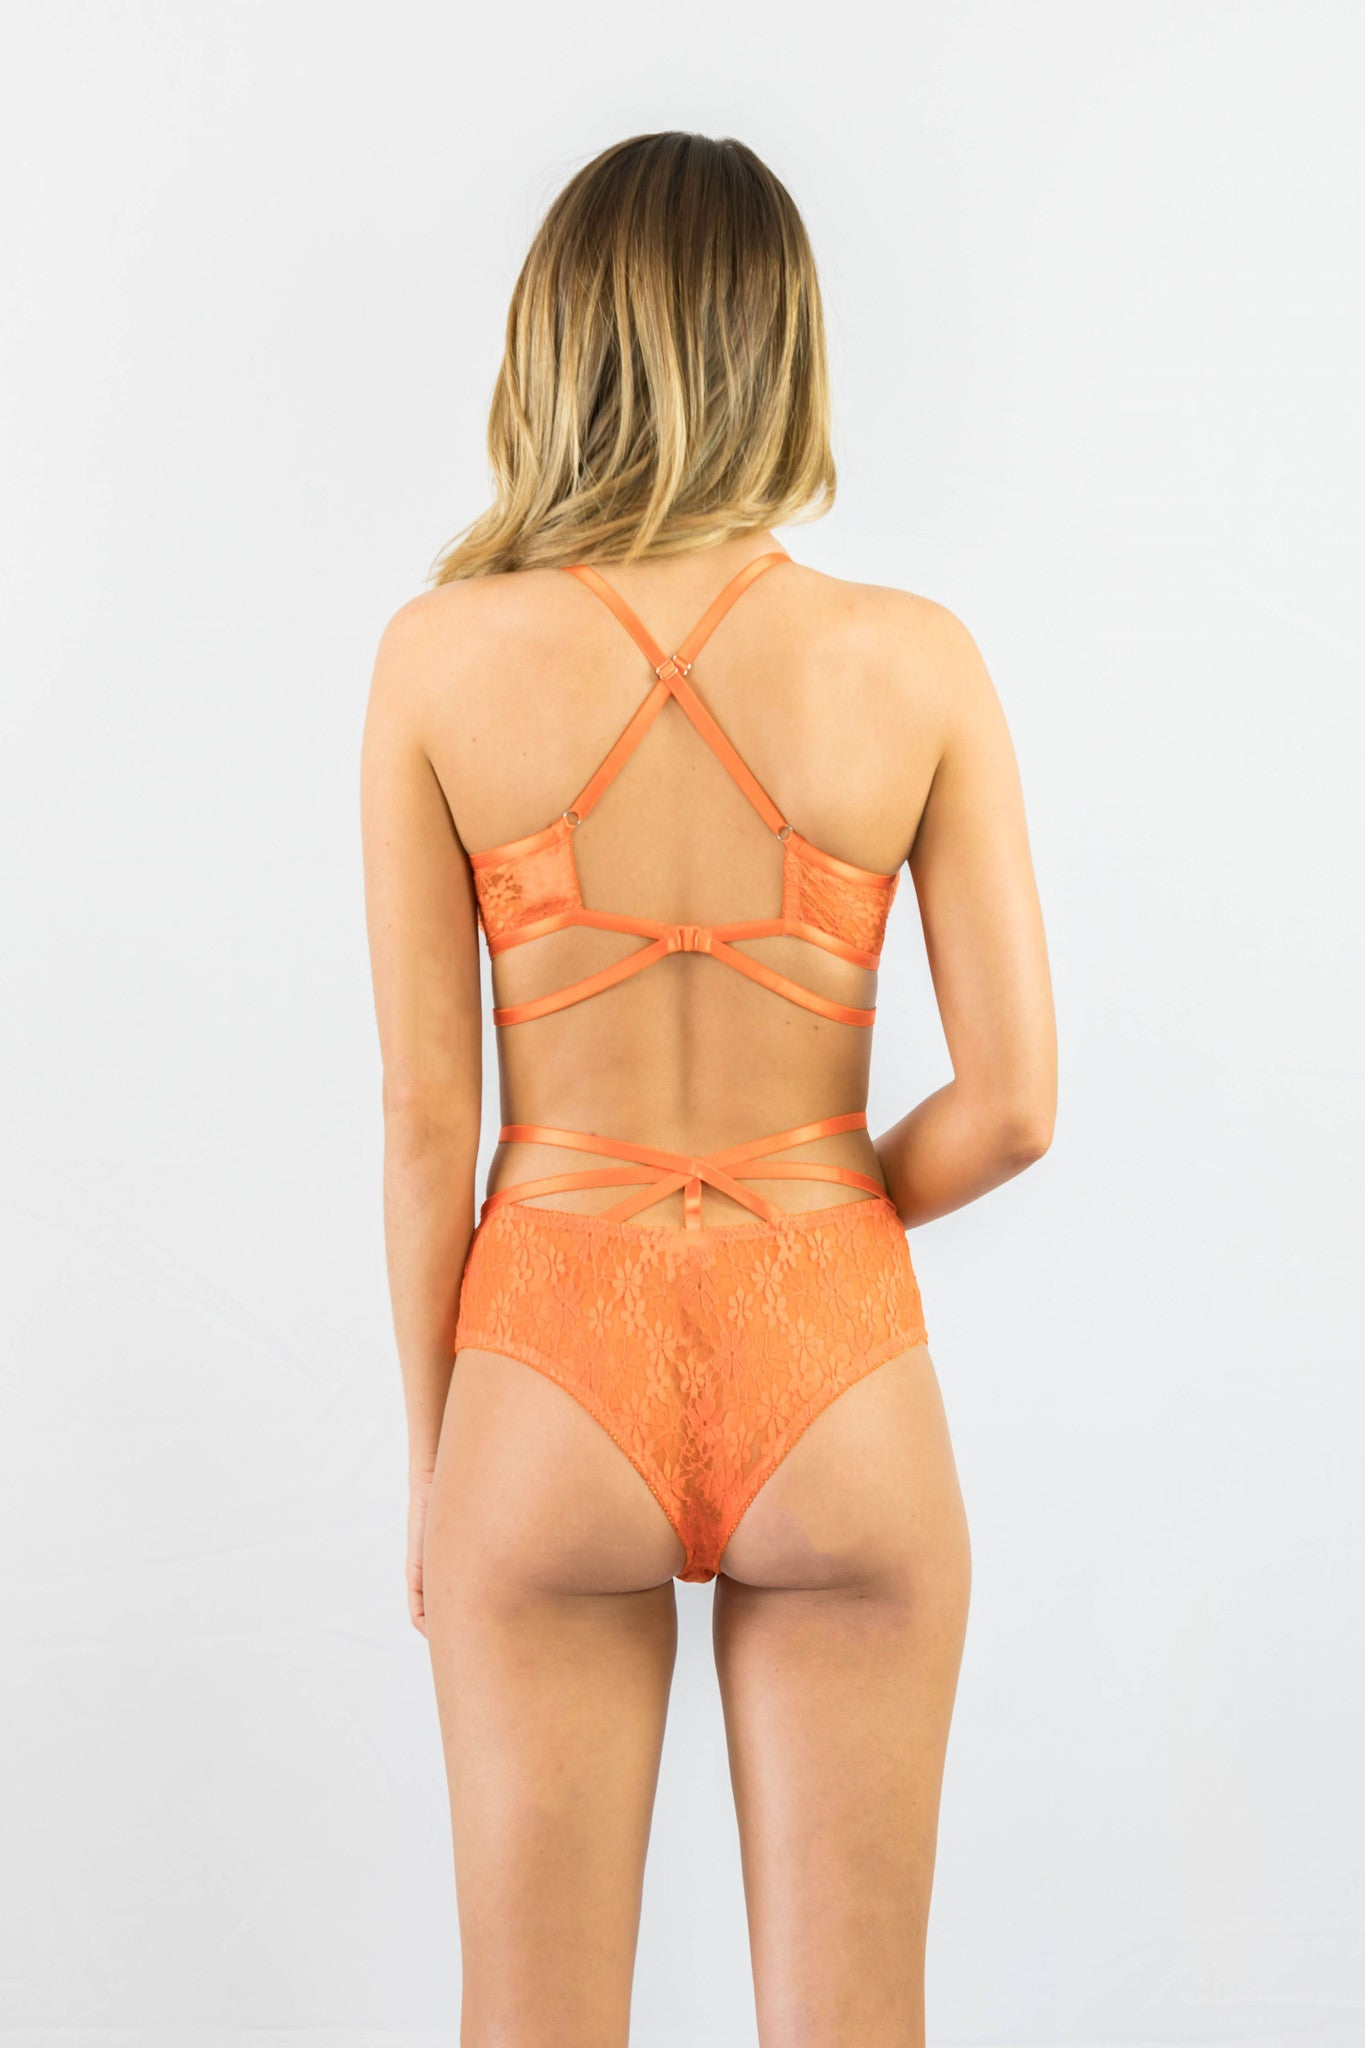 Rehab Lacey Free Lingerie Set Orange - Intimates - REHAB - Free Vibrationz - 3